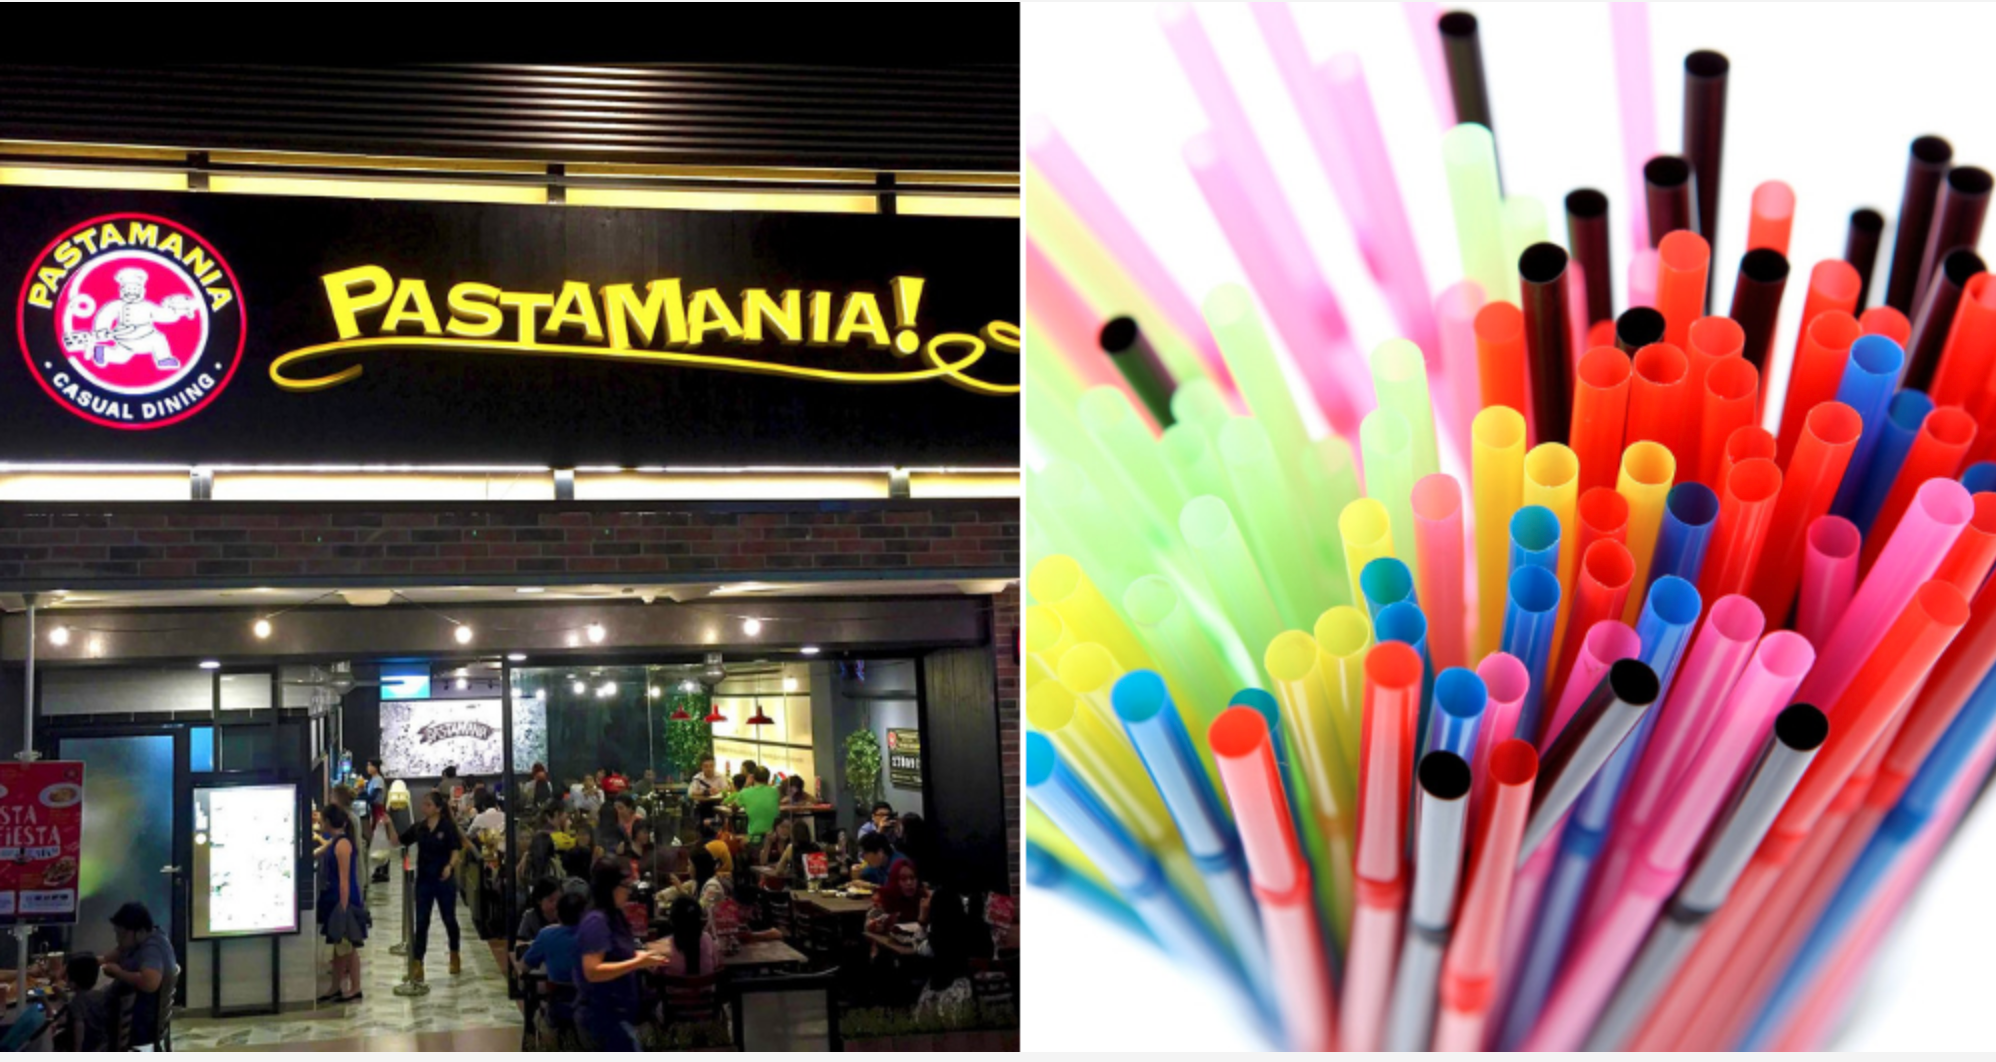 pastamania supports no plastic straws